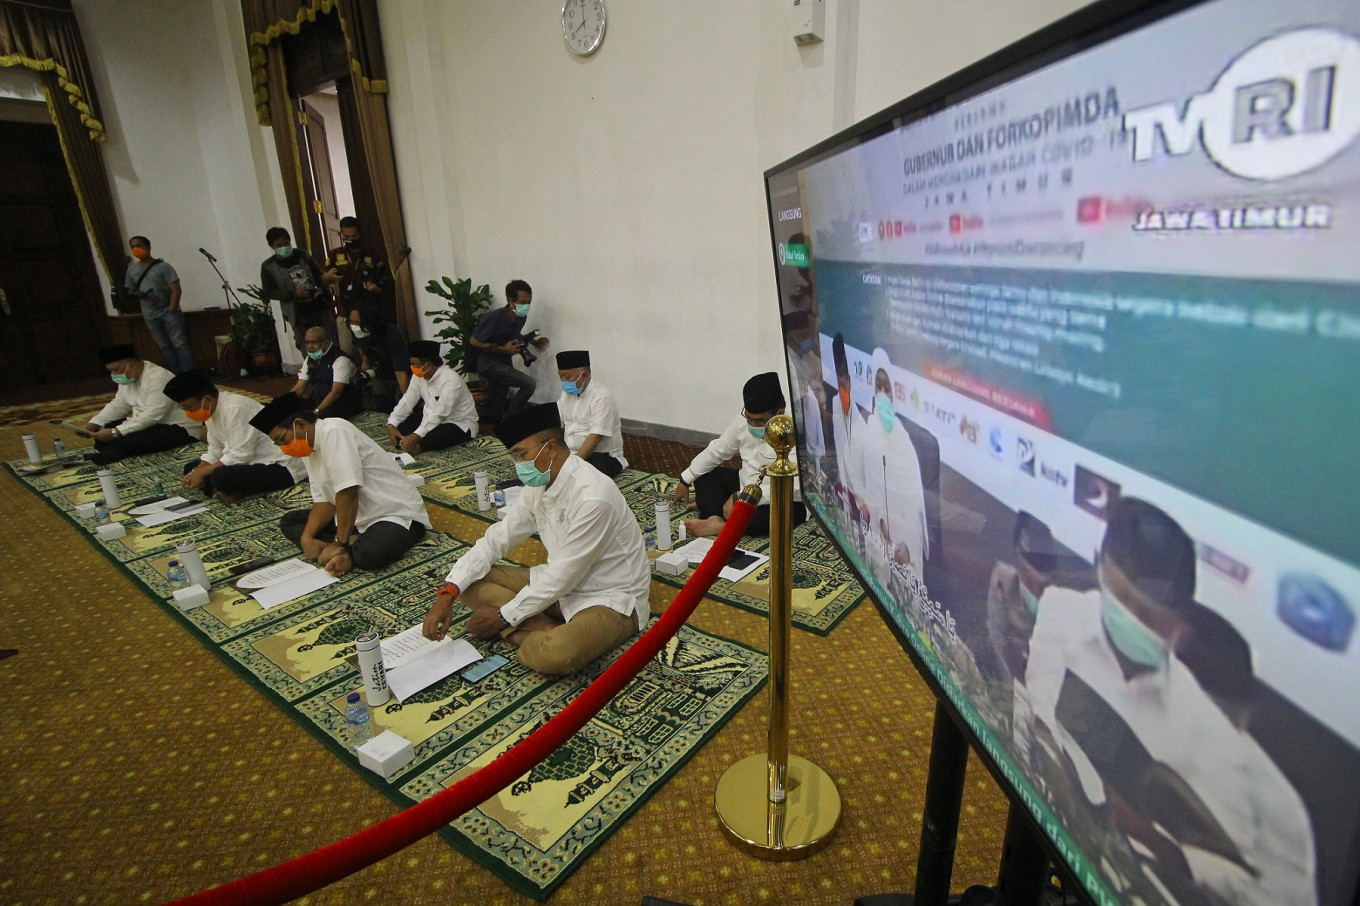 Pray from home, together: NU holds massive online religious gathering in East Java